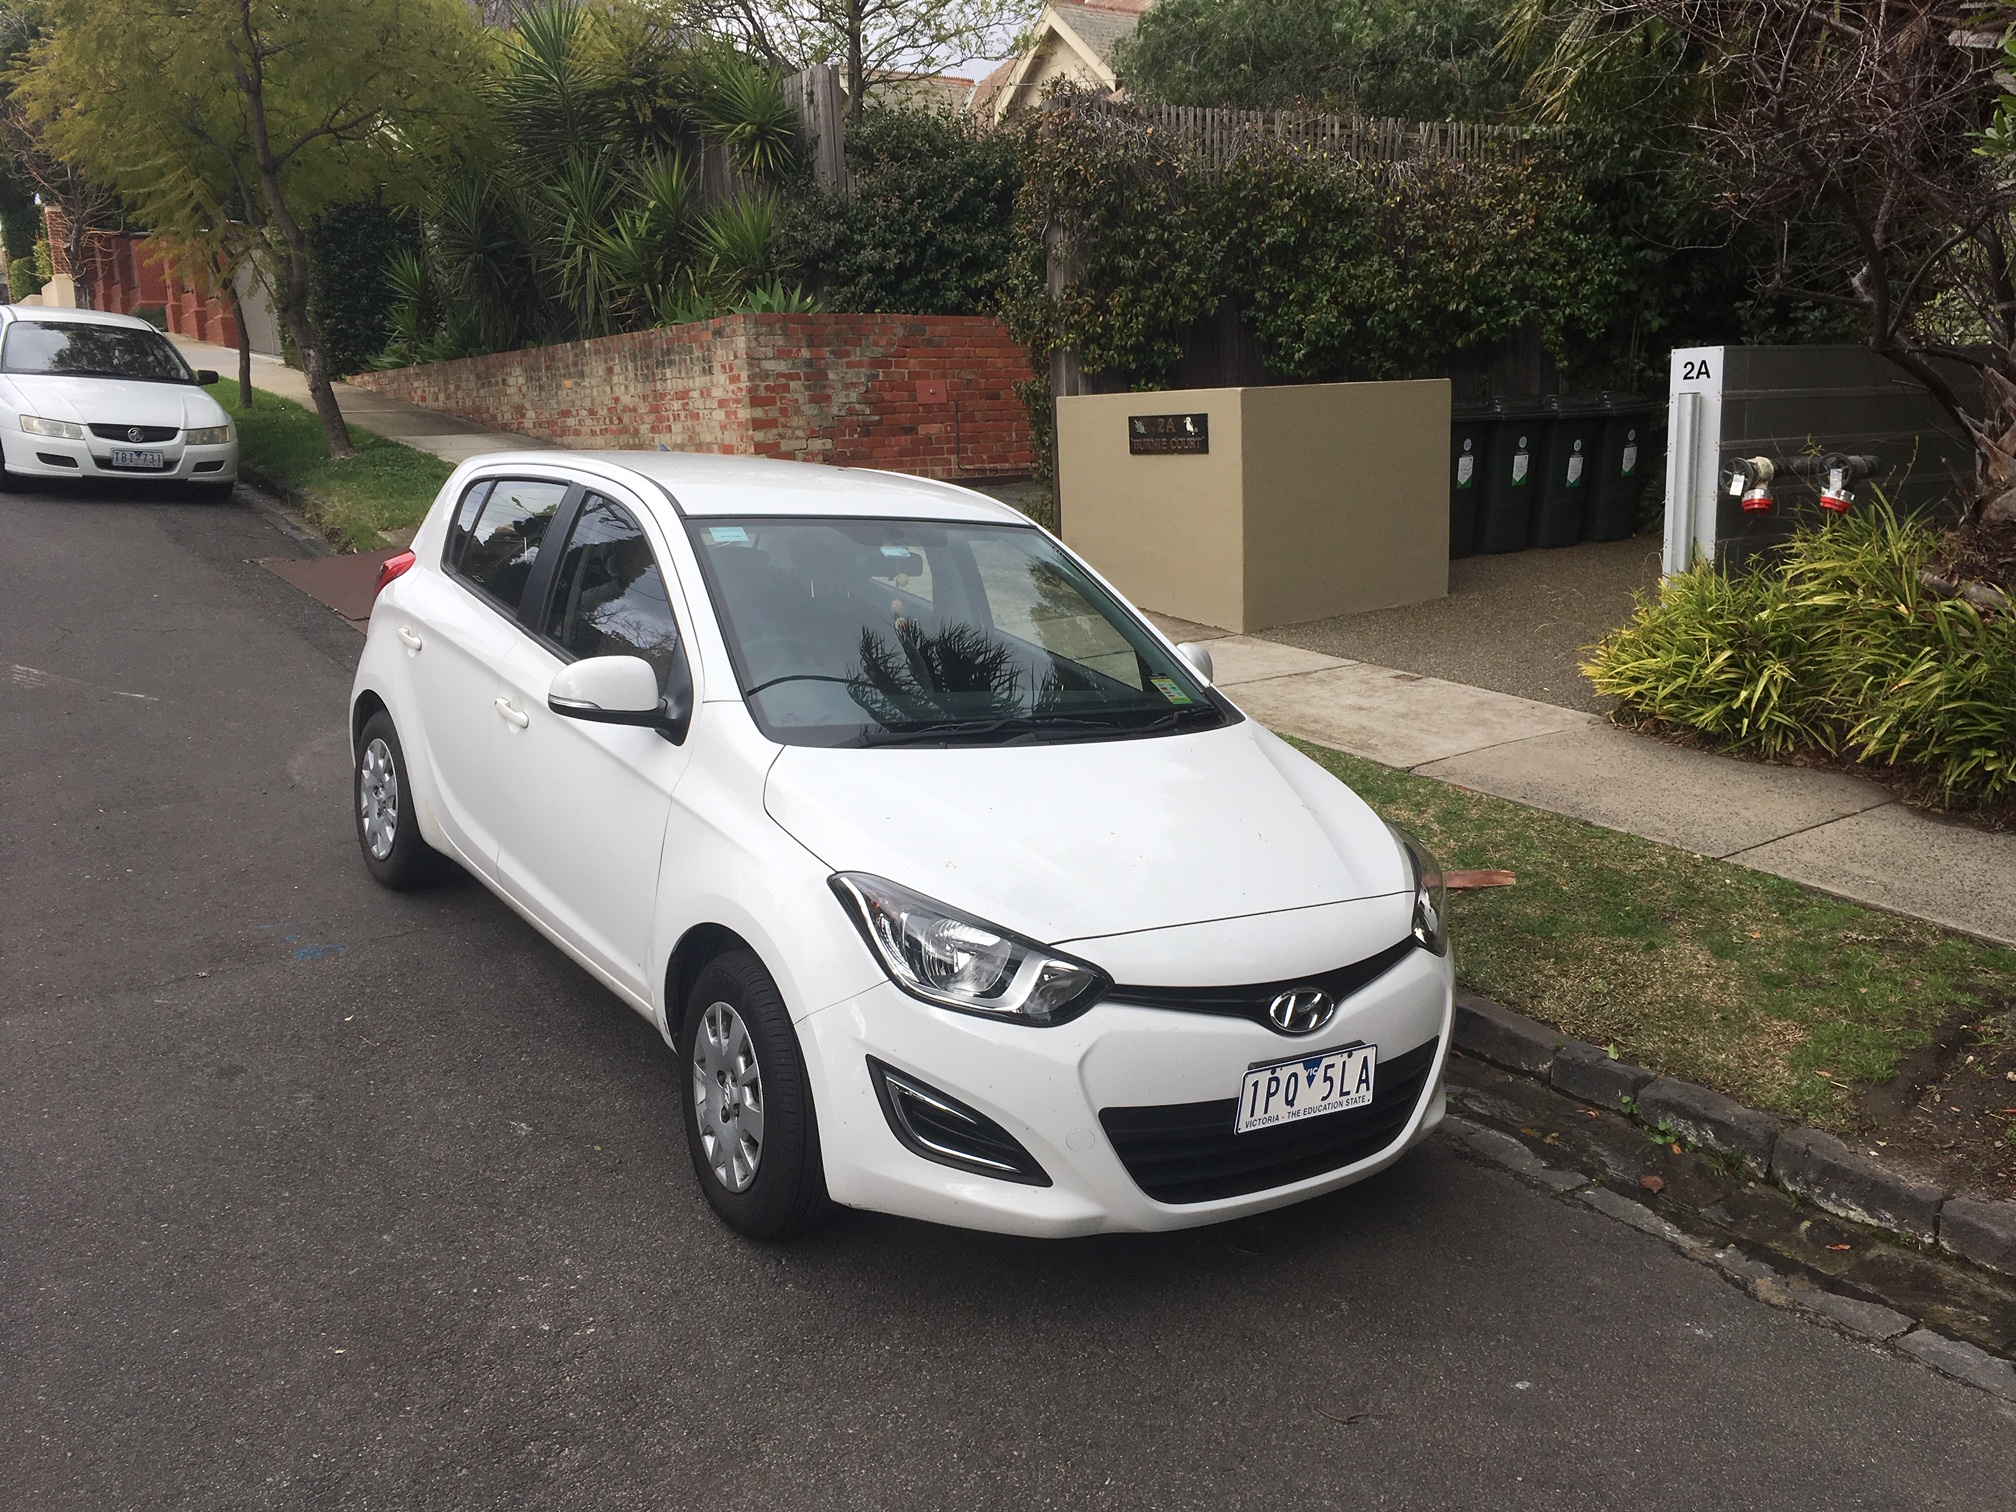 Picture of Bronte's 2014 Hyundai i20